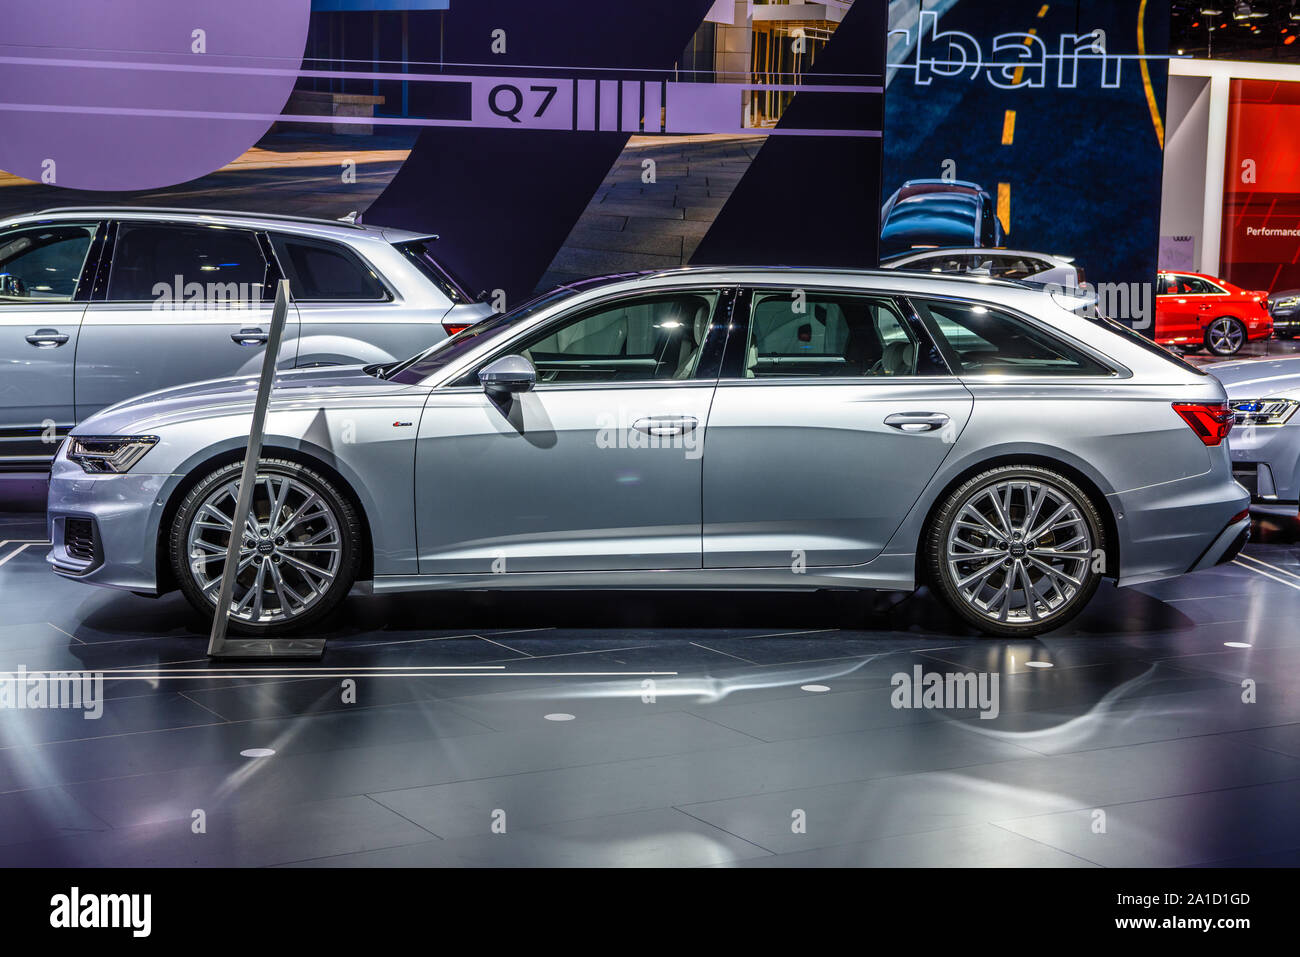 A6 Avant High Resolution Stock Photography And Images Alamy